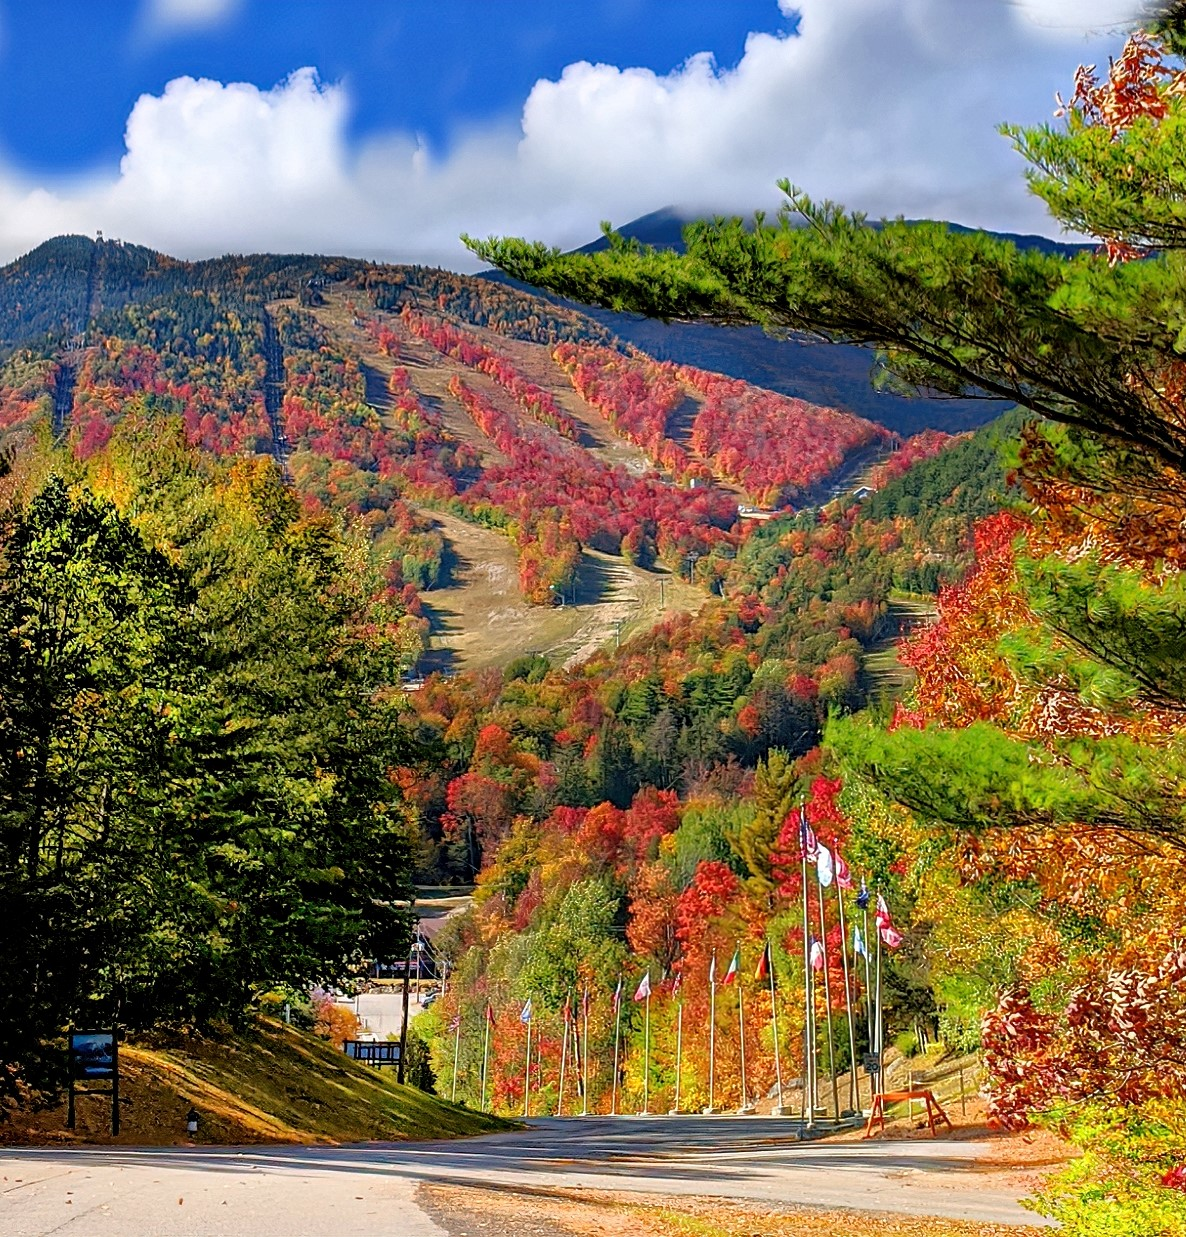 Whiteface Mountain shows off its seasonal red face. Just gorgeous!